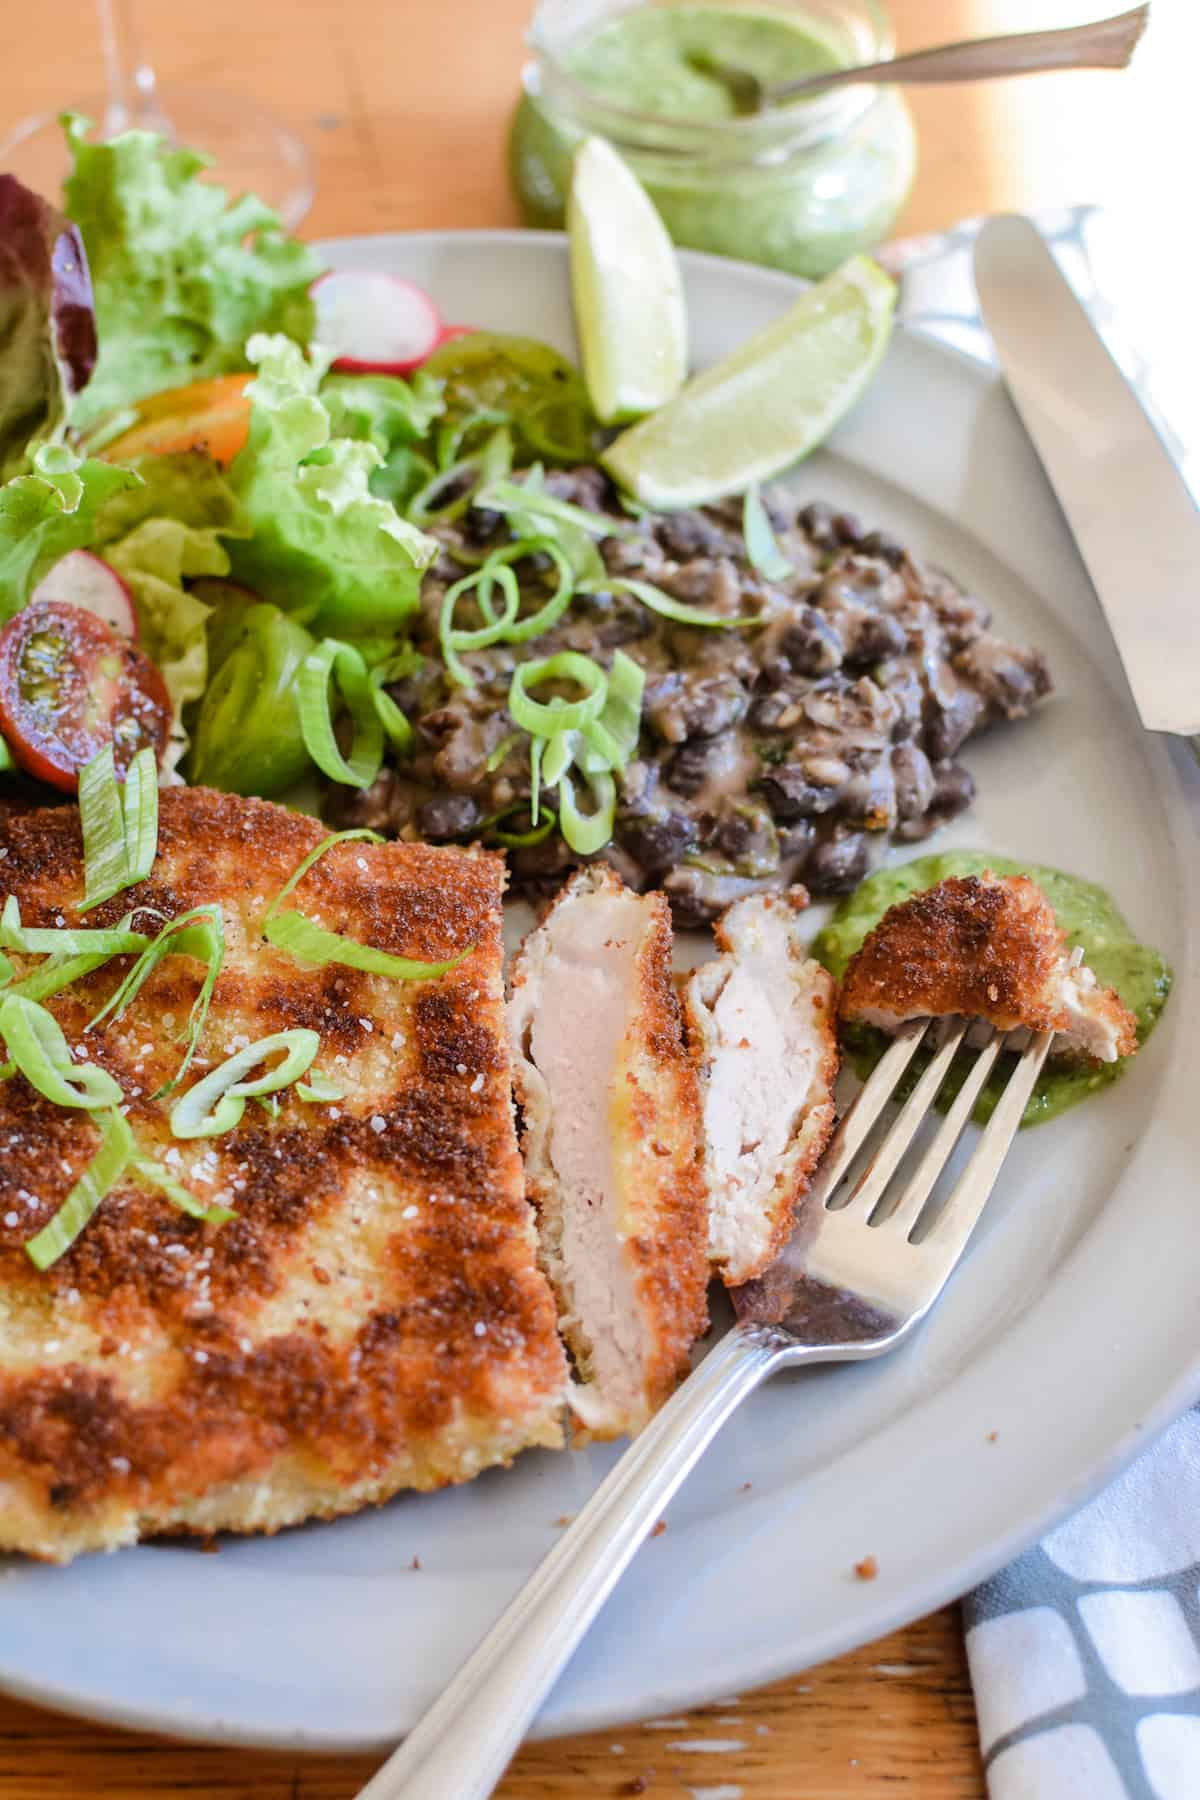 Pork cutlet sliced on a plate with green sauce, black beans, and a salad with lime wedges and a piece on a fork.